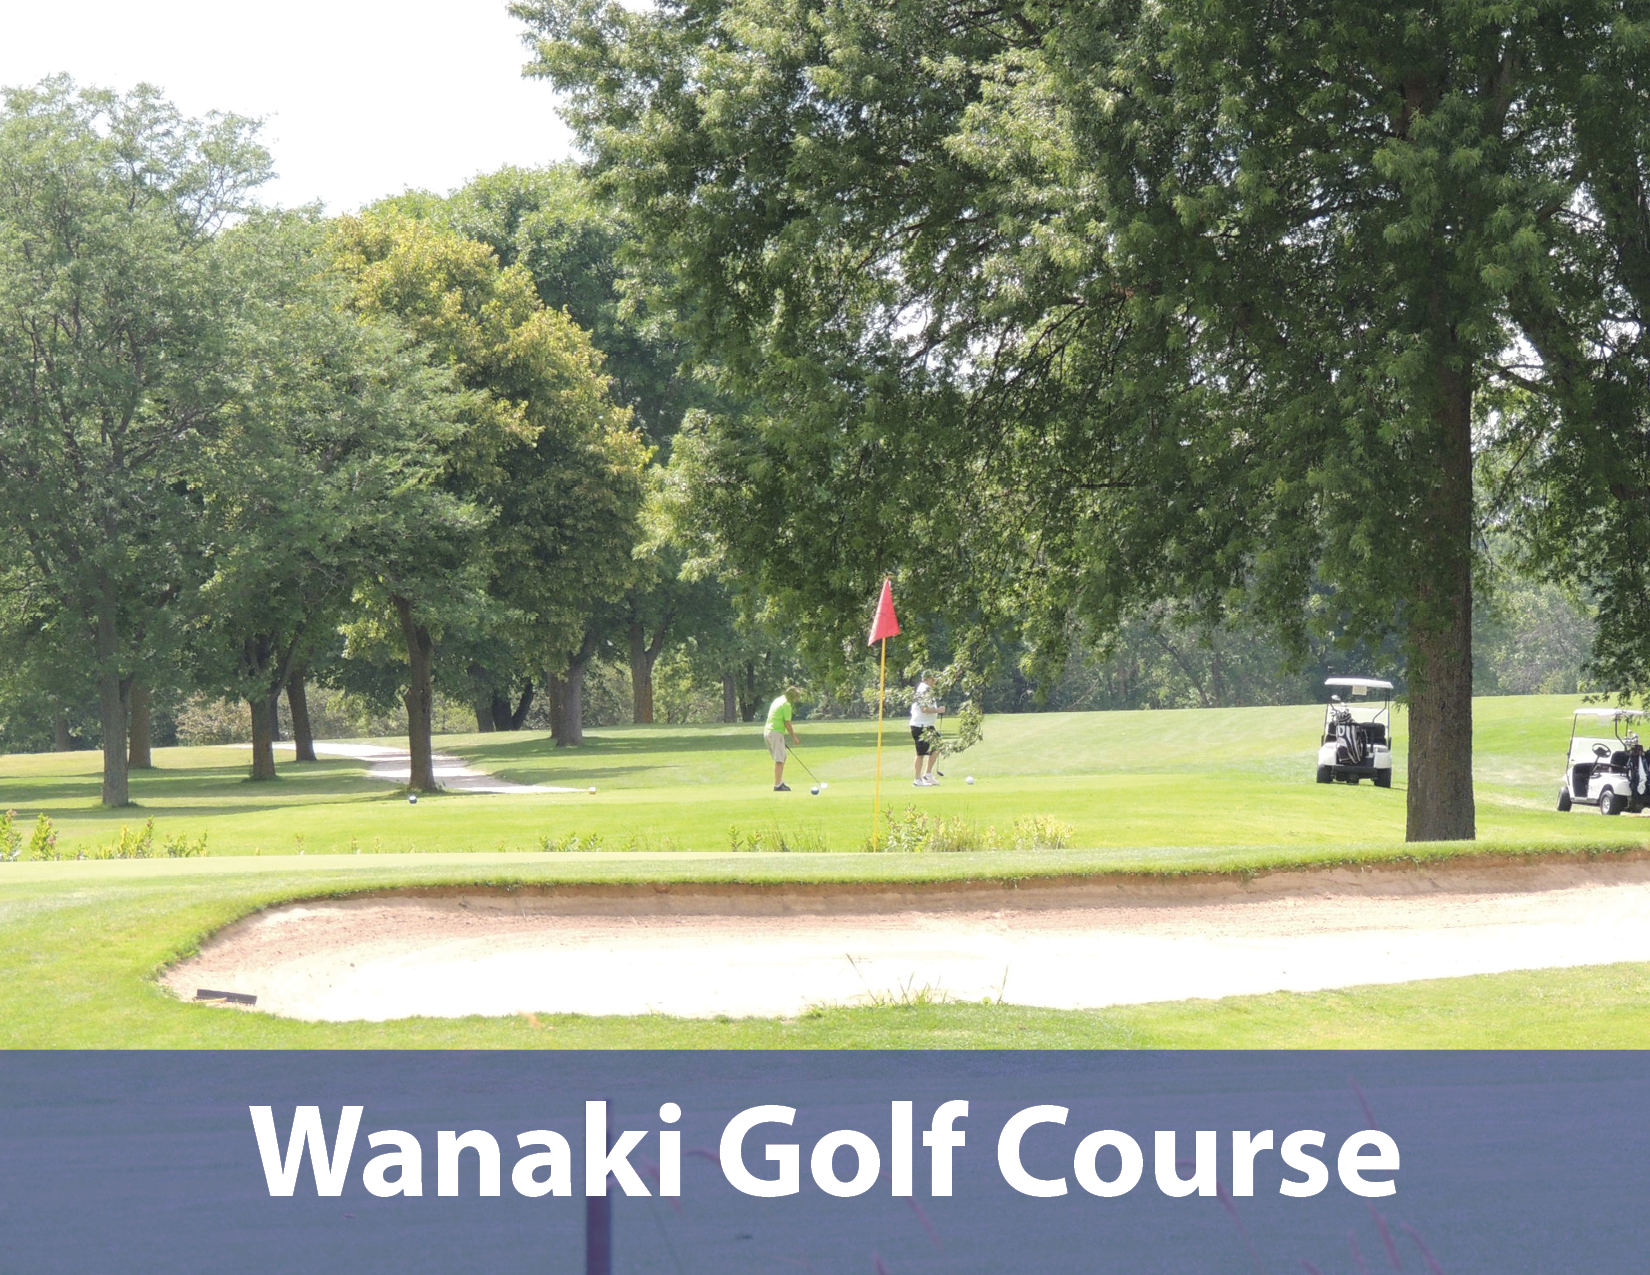 Wanaki Golf Course